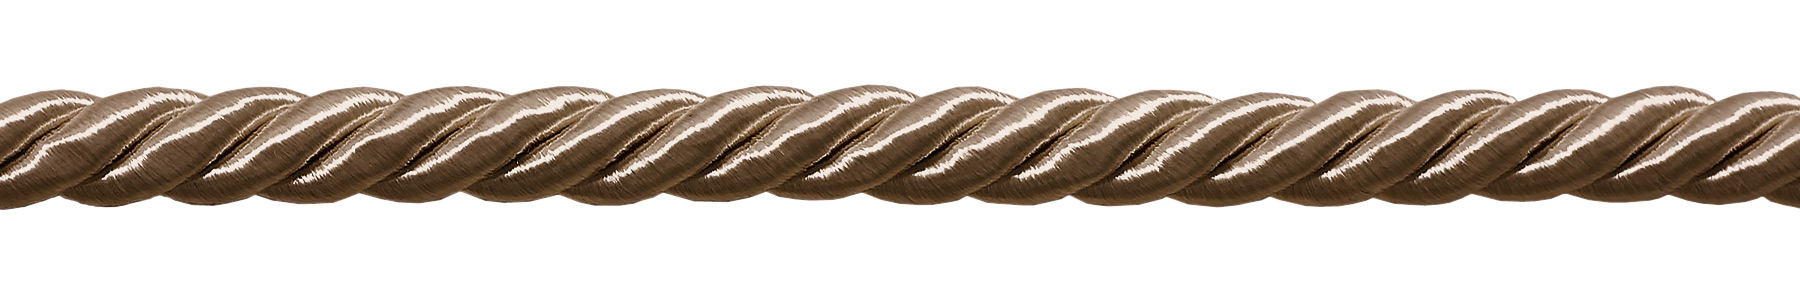 Basic Trim Collection 3//8 inch Large Dark Sand Color Decorative Cord Sold by The Yard Style# 0038NL Color: Beige A8